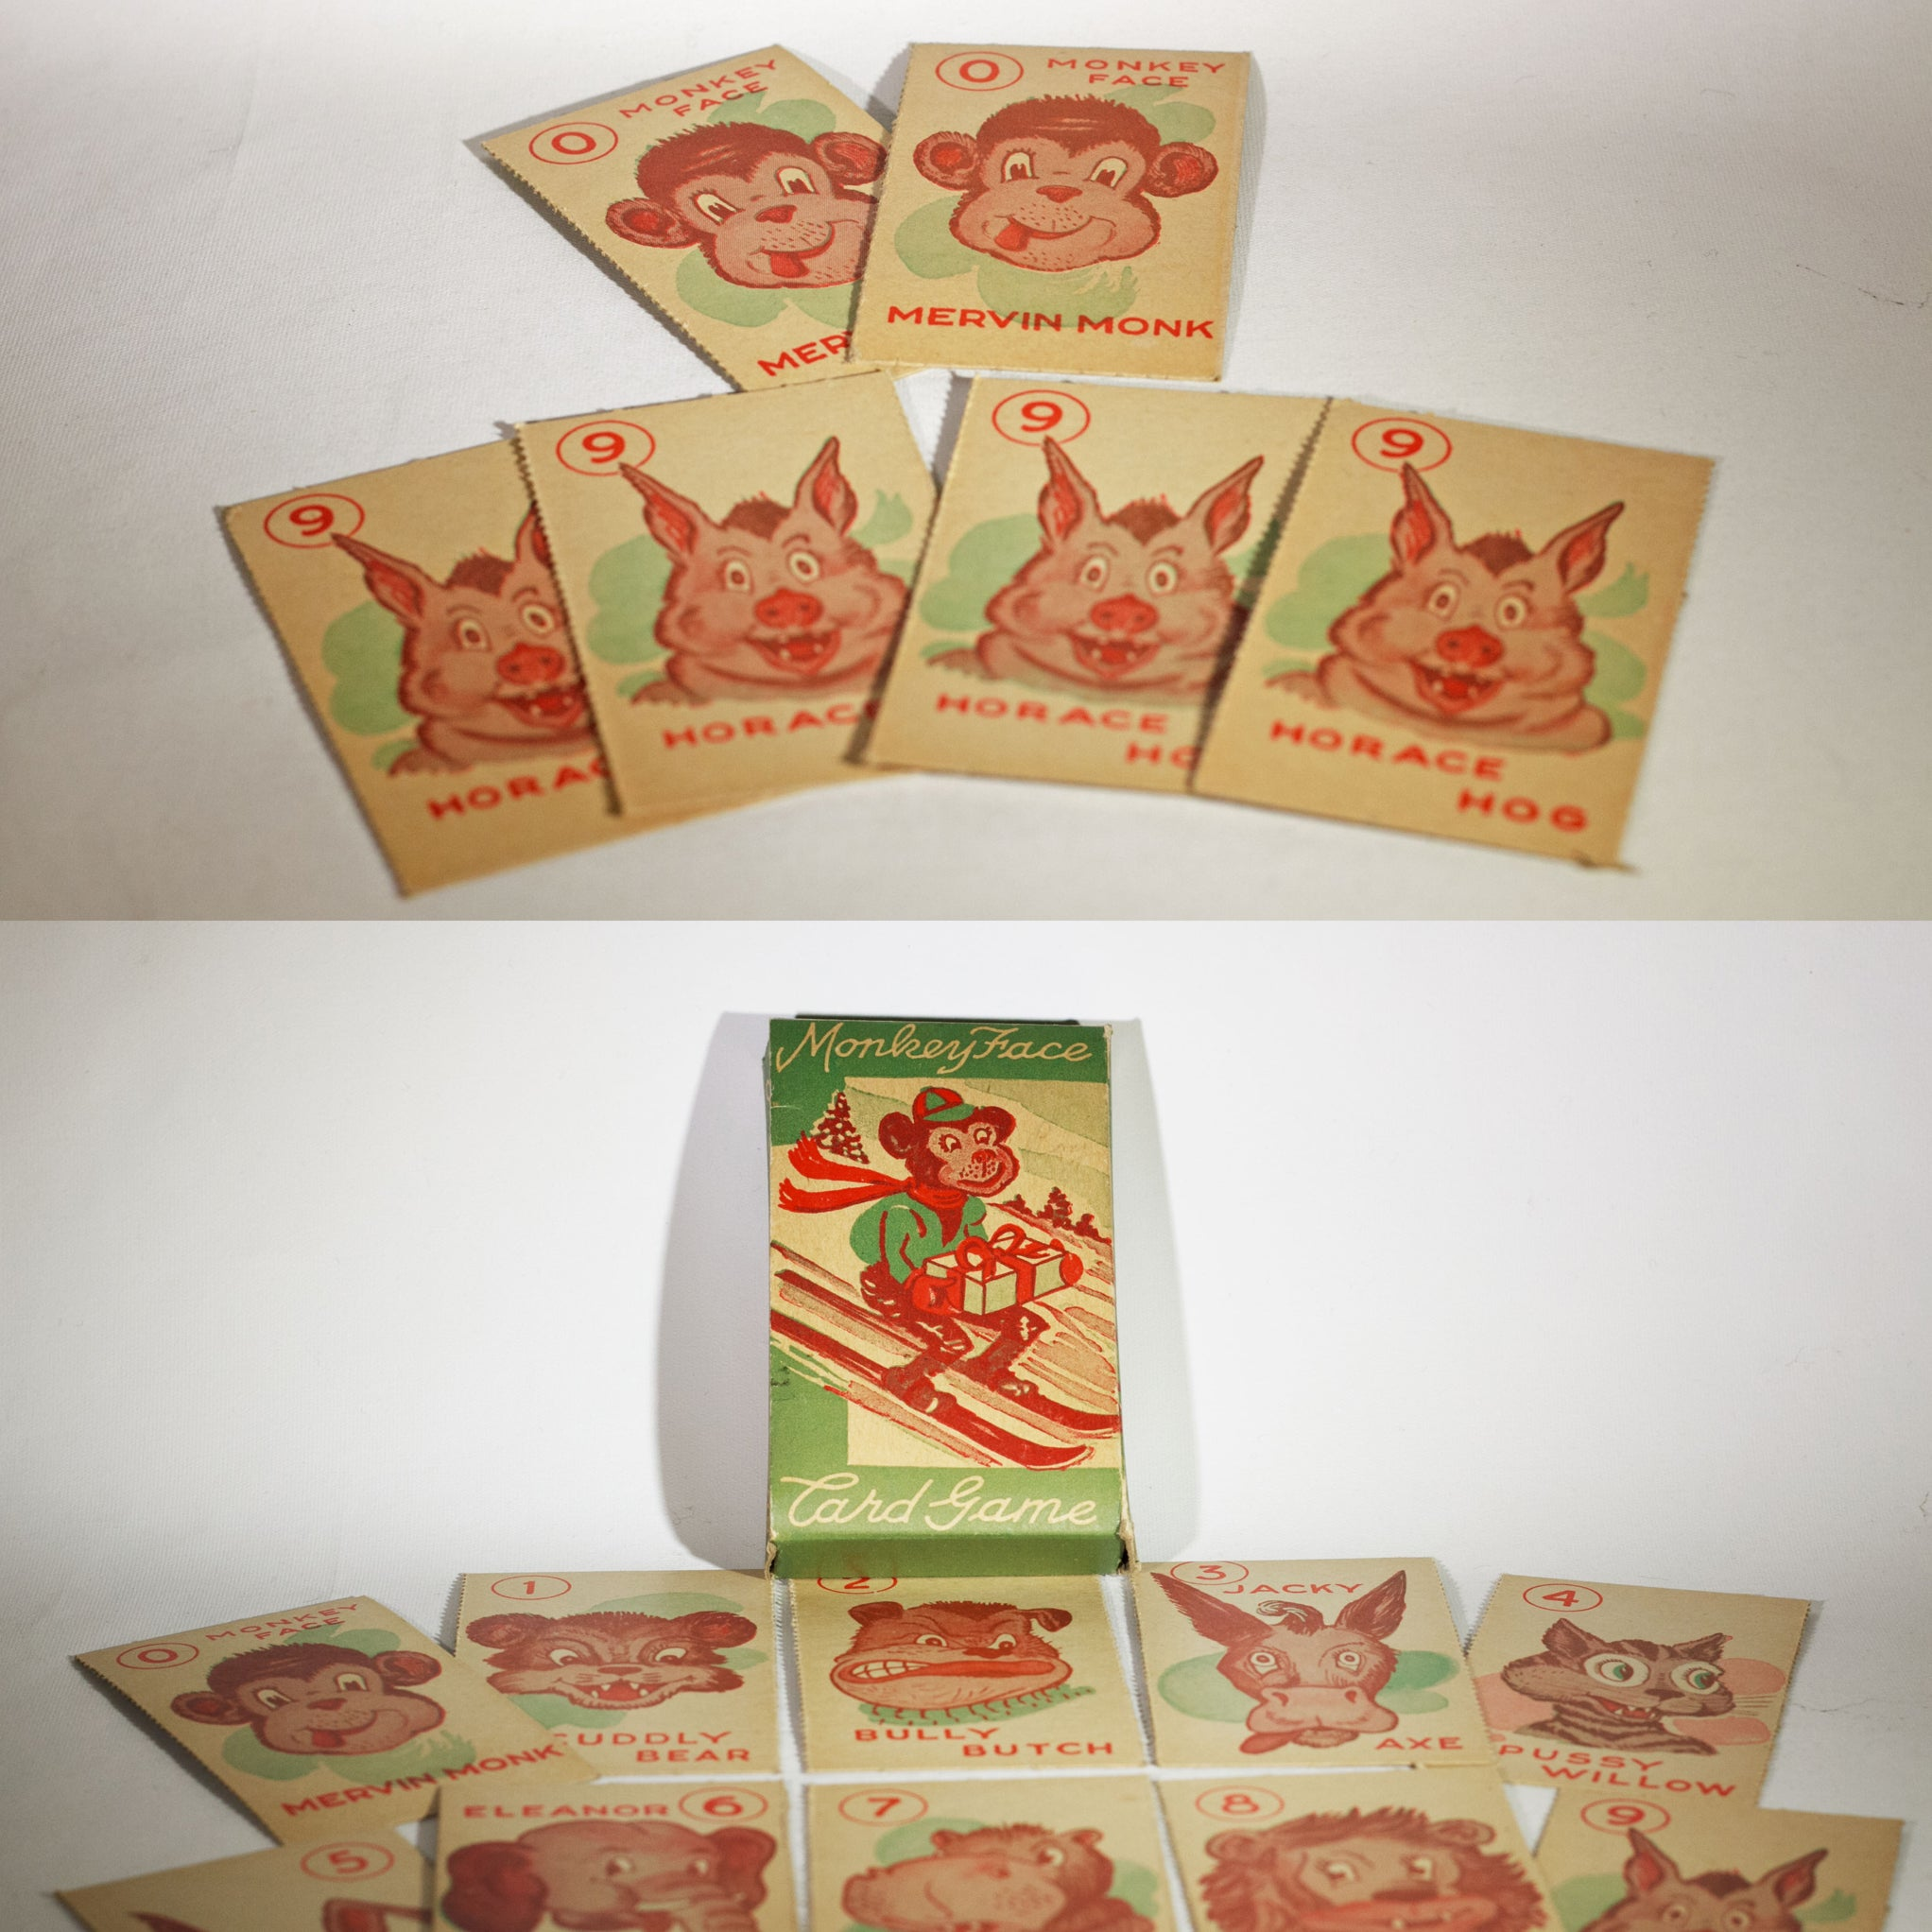 MERVIN MONK AND FRIENDS MONKEY FACE Card Game Christmas Edition Circa 1935